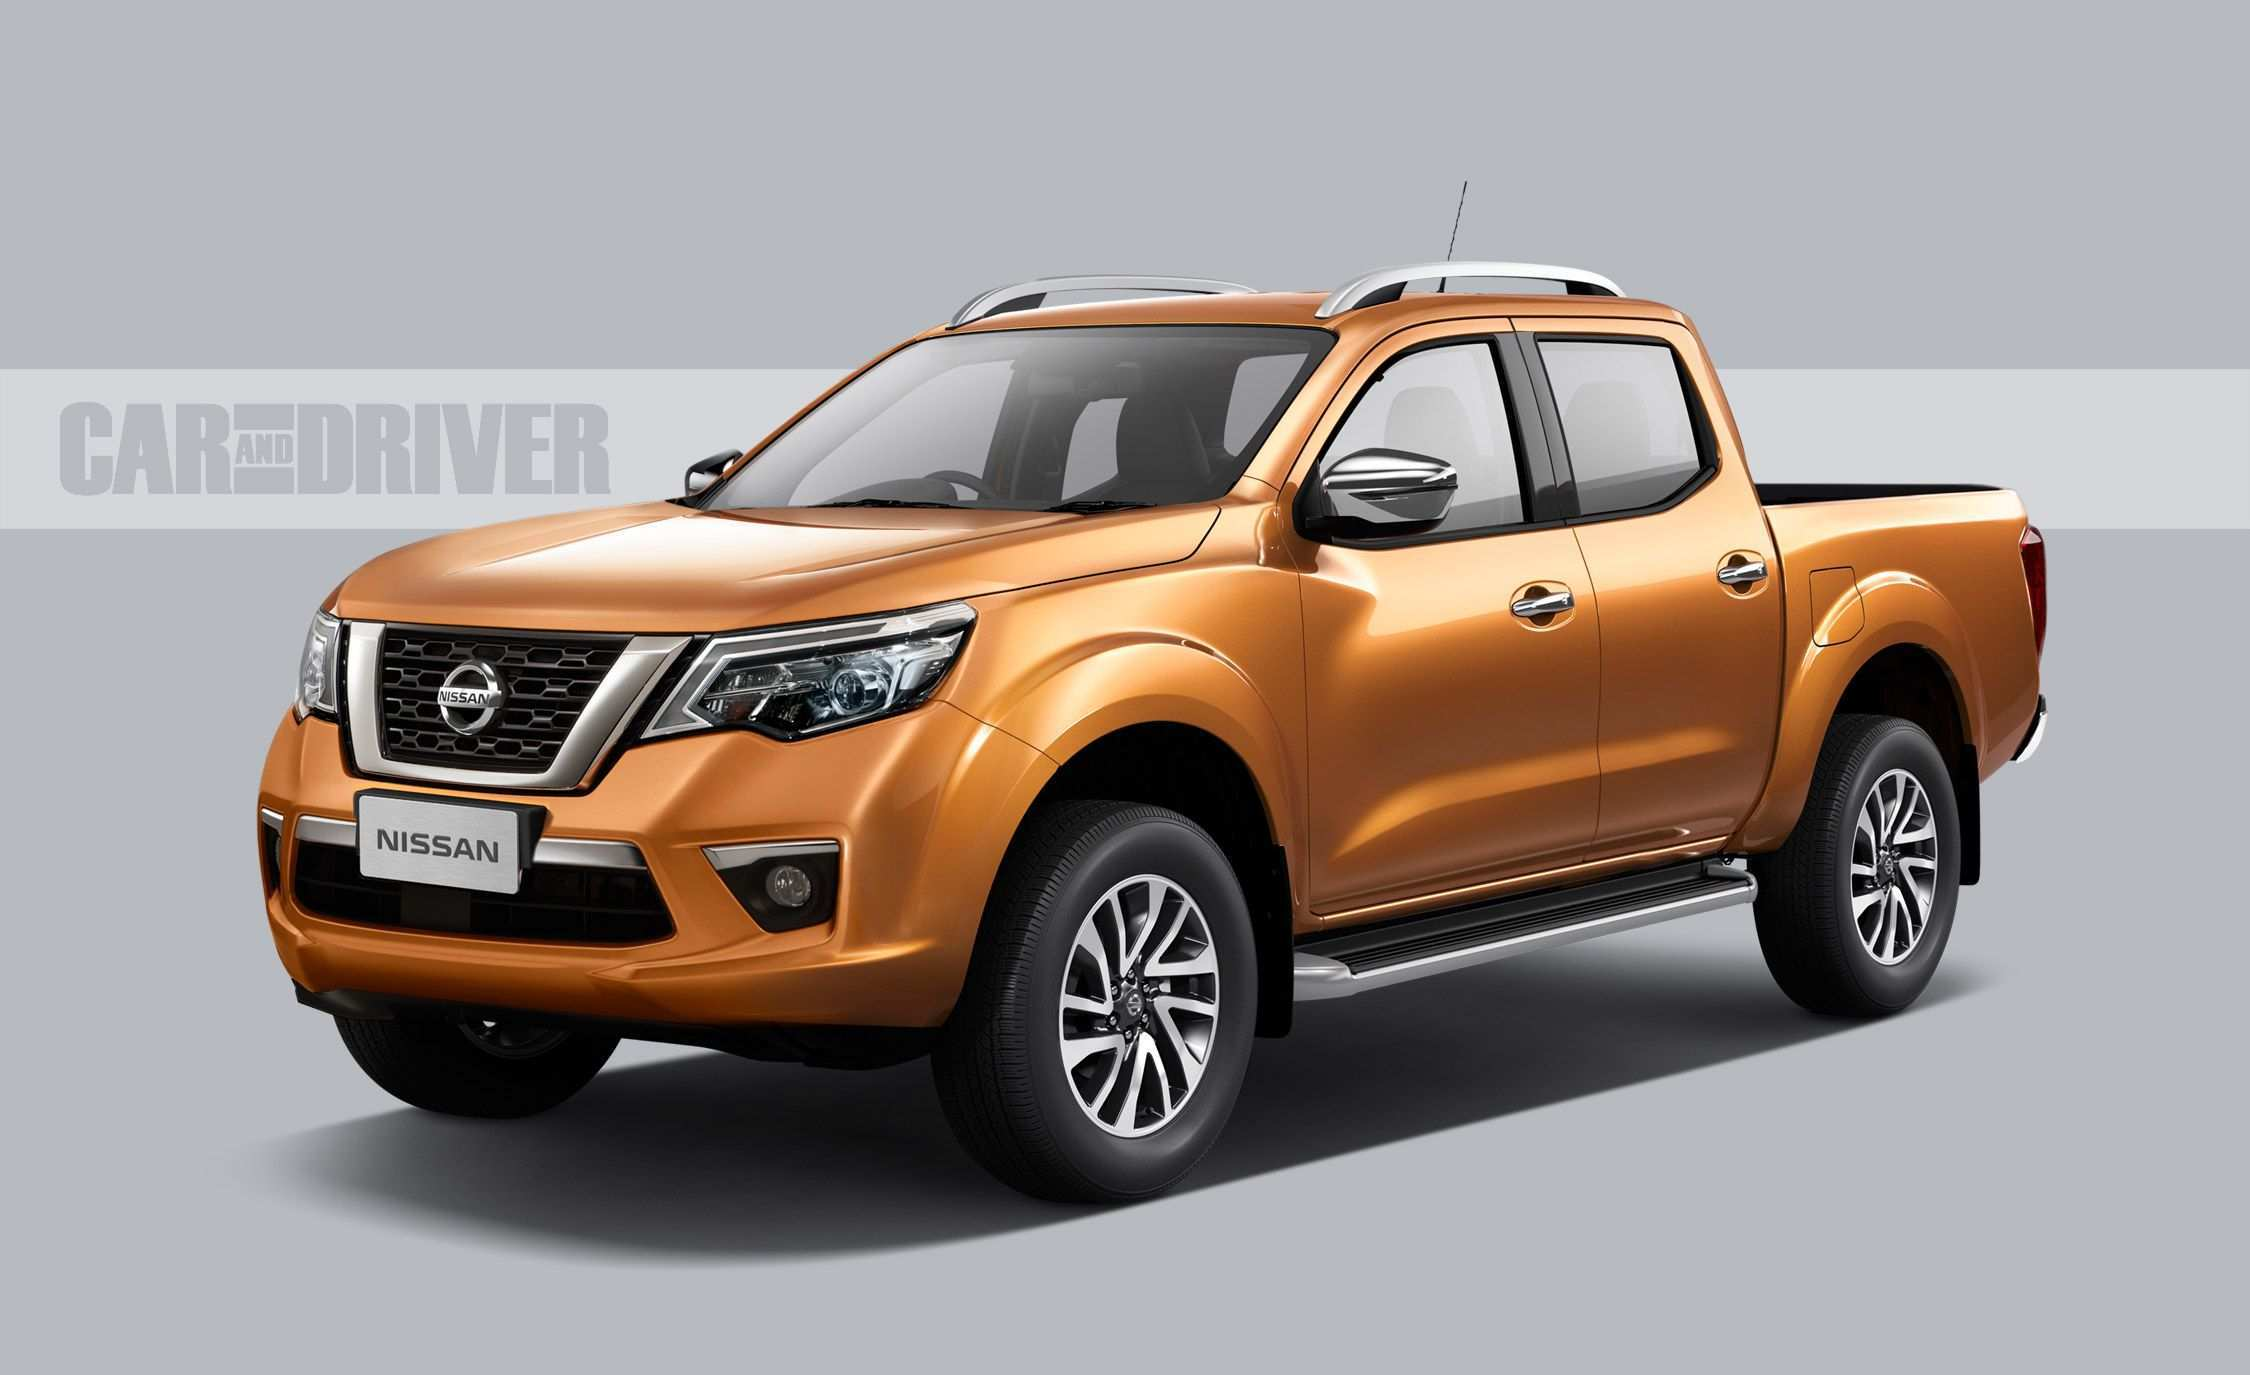 81 Best Review 2020 Nissan Frontier Model by 2020 Nissan Frontier